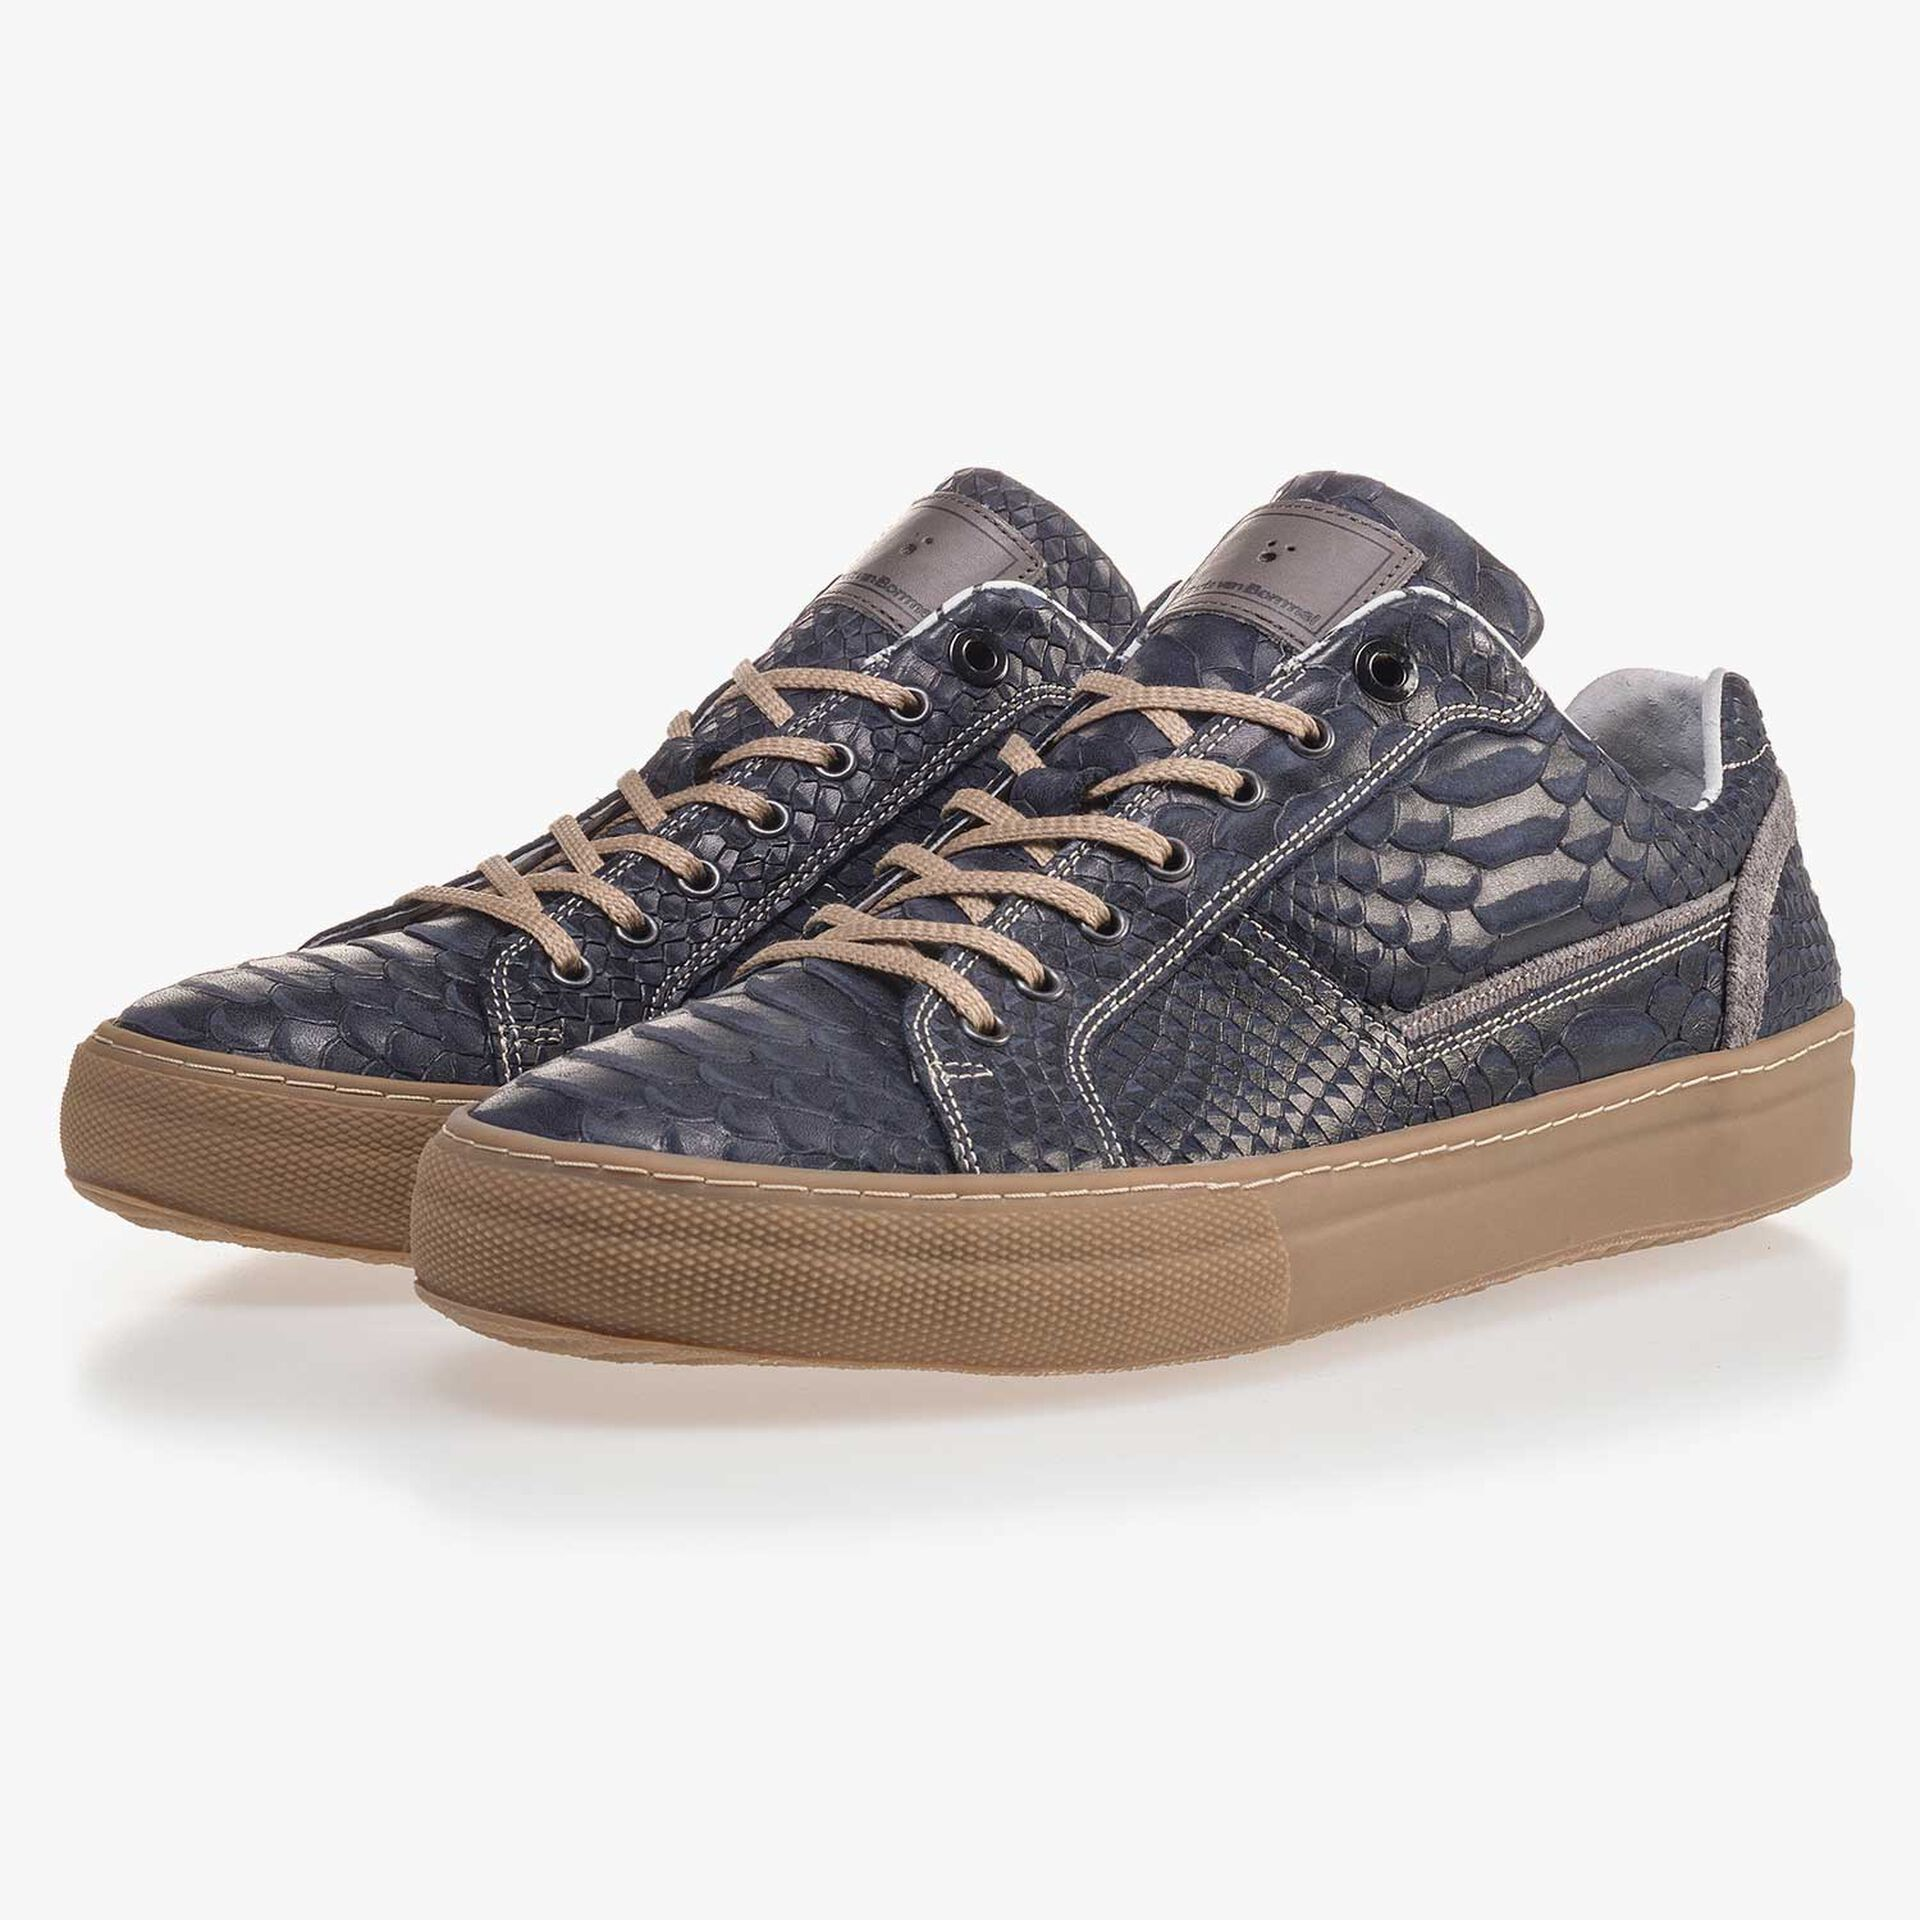 Dark blue leather sneaker finished with a snake print